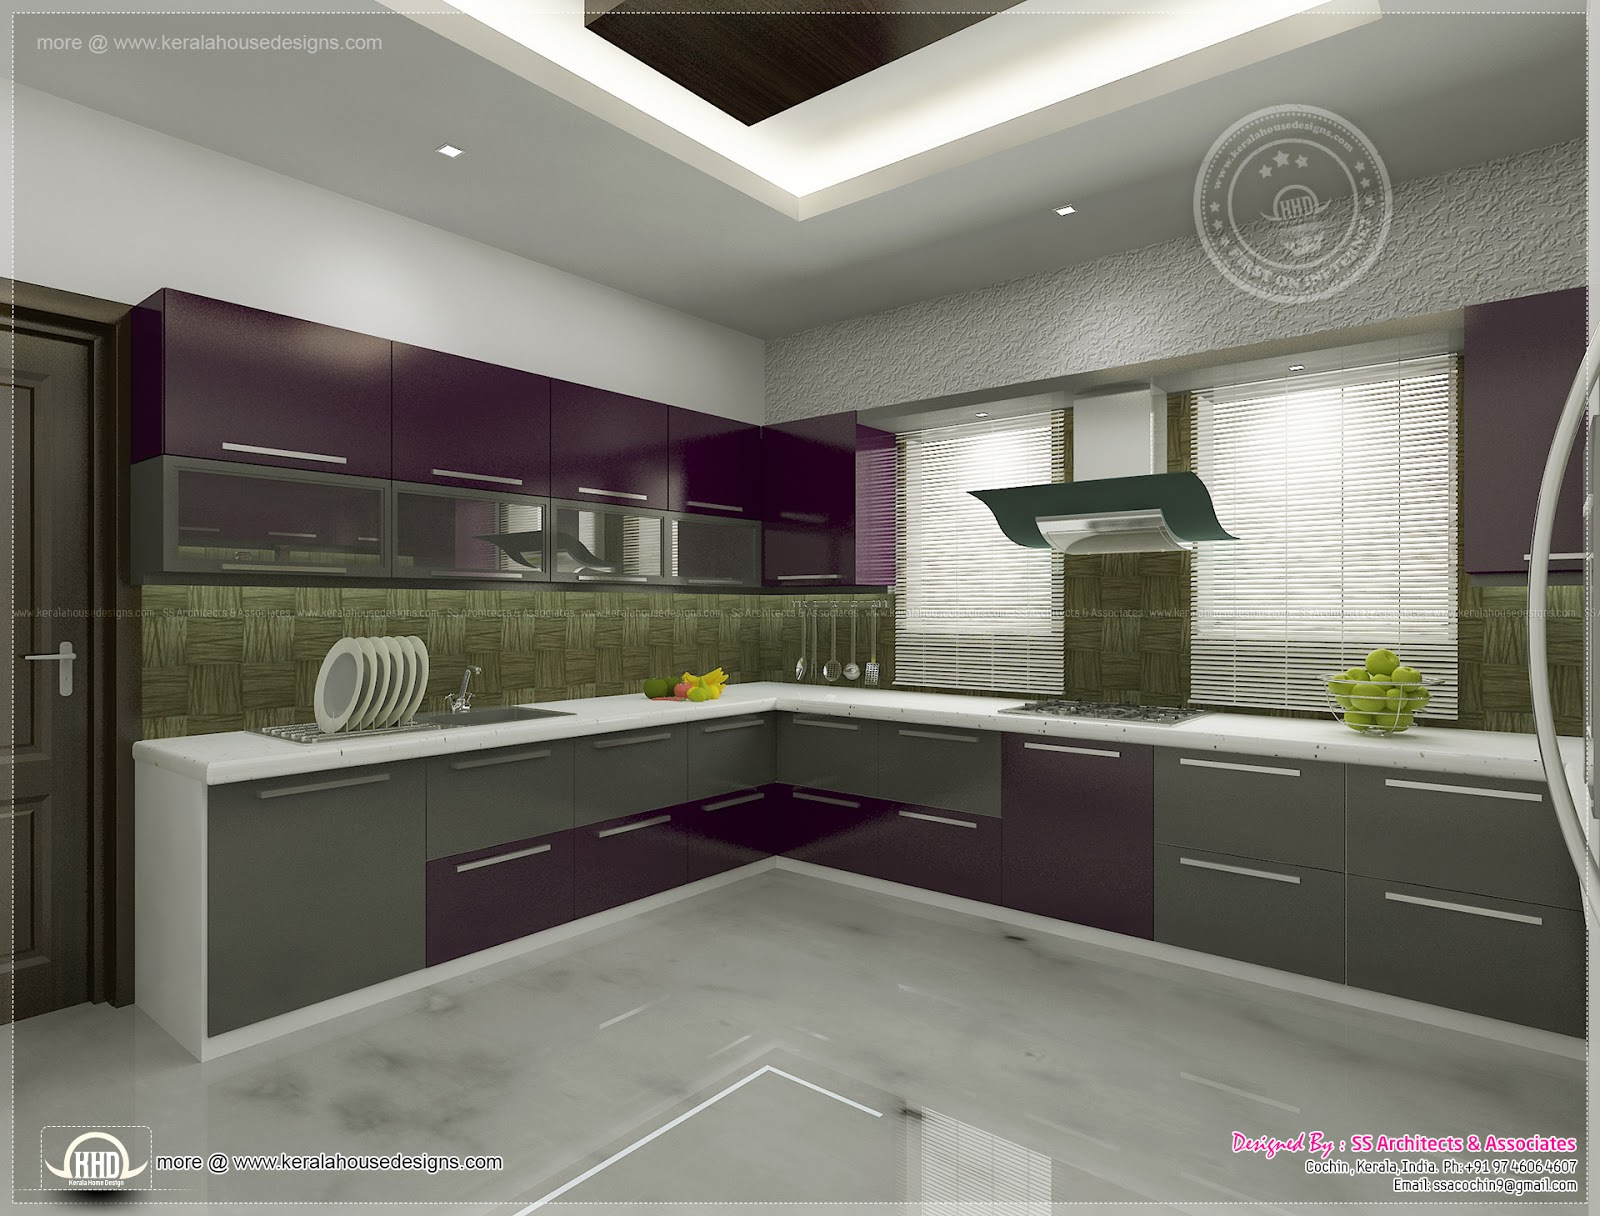 Kitchen interior views by ss architects cochin kerala home design and floor plans - Interior designs of houses and kitchens ...